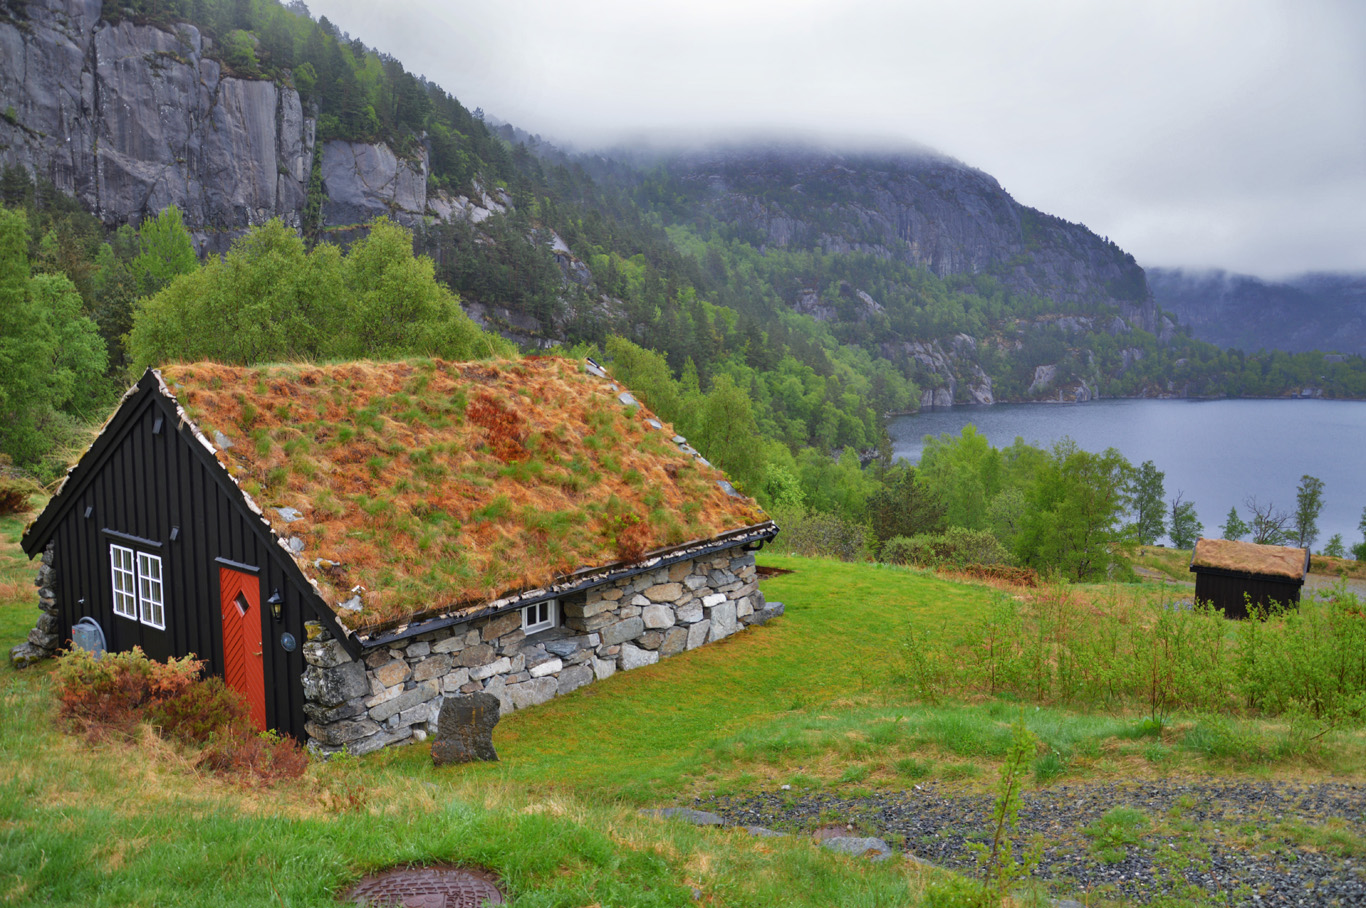 Typical Norwegian hut